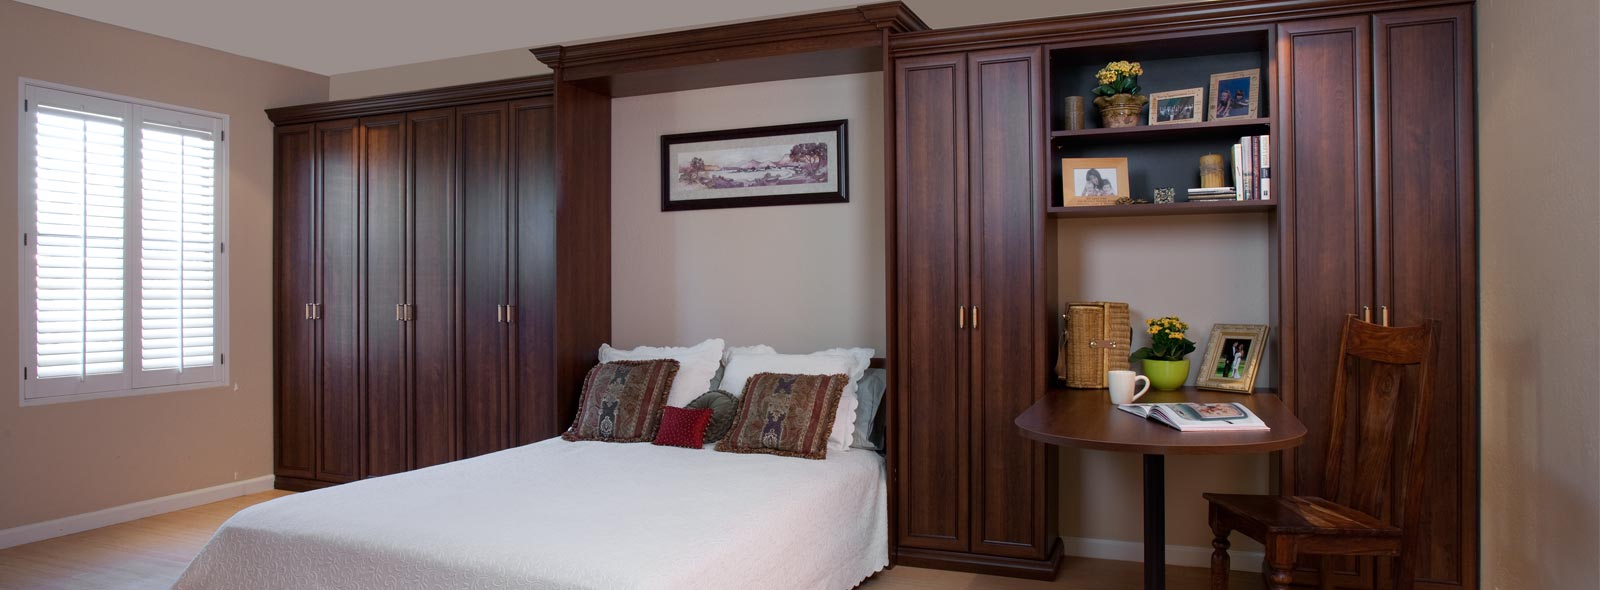 Walk in wood custom closet custom coco murphy bed home wall beds in delta british columbia